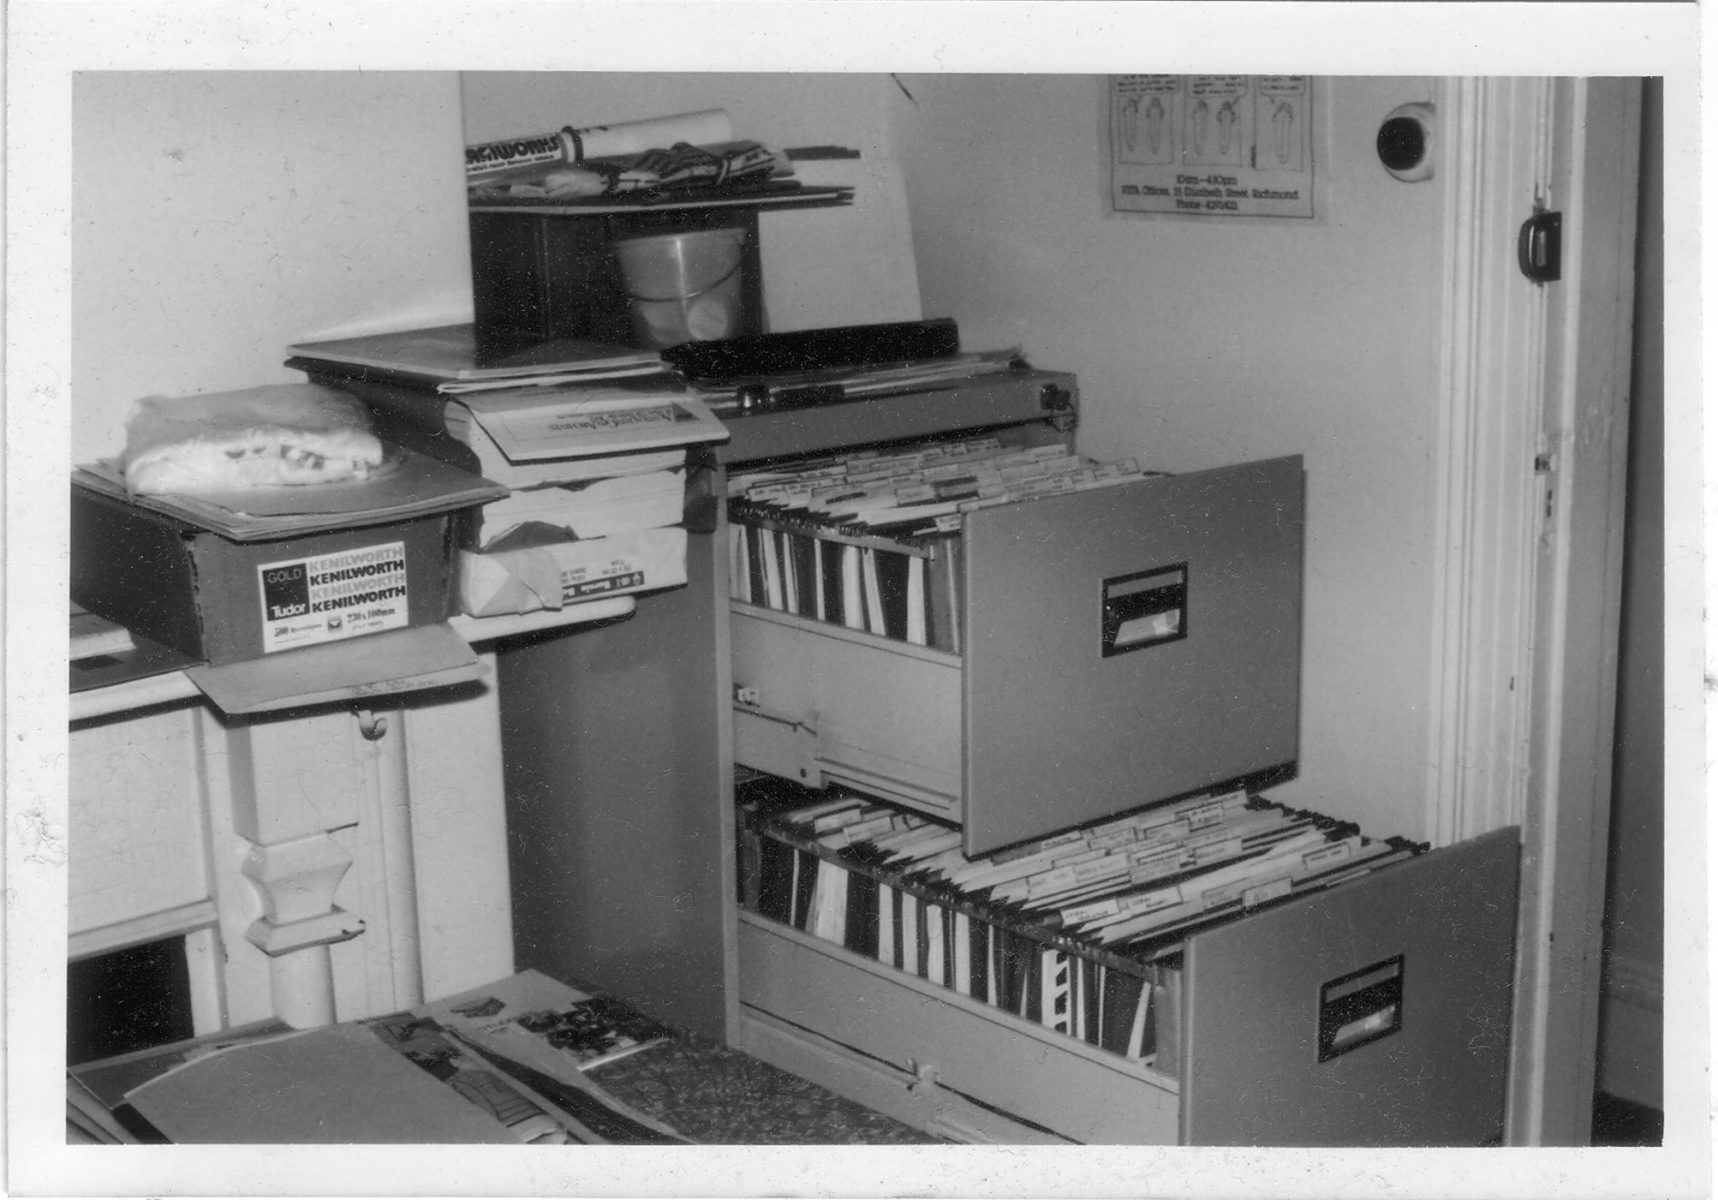 ALGA when at The Hub, 1980-1987, c.1982 (photo: unidentified photographer), Photographs Collection